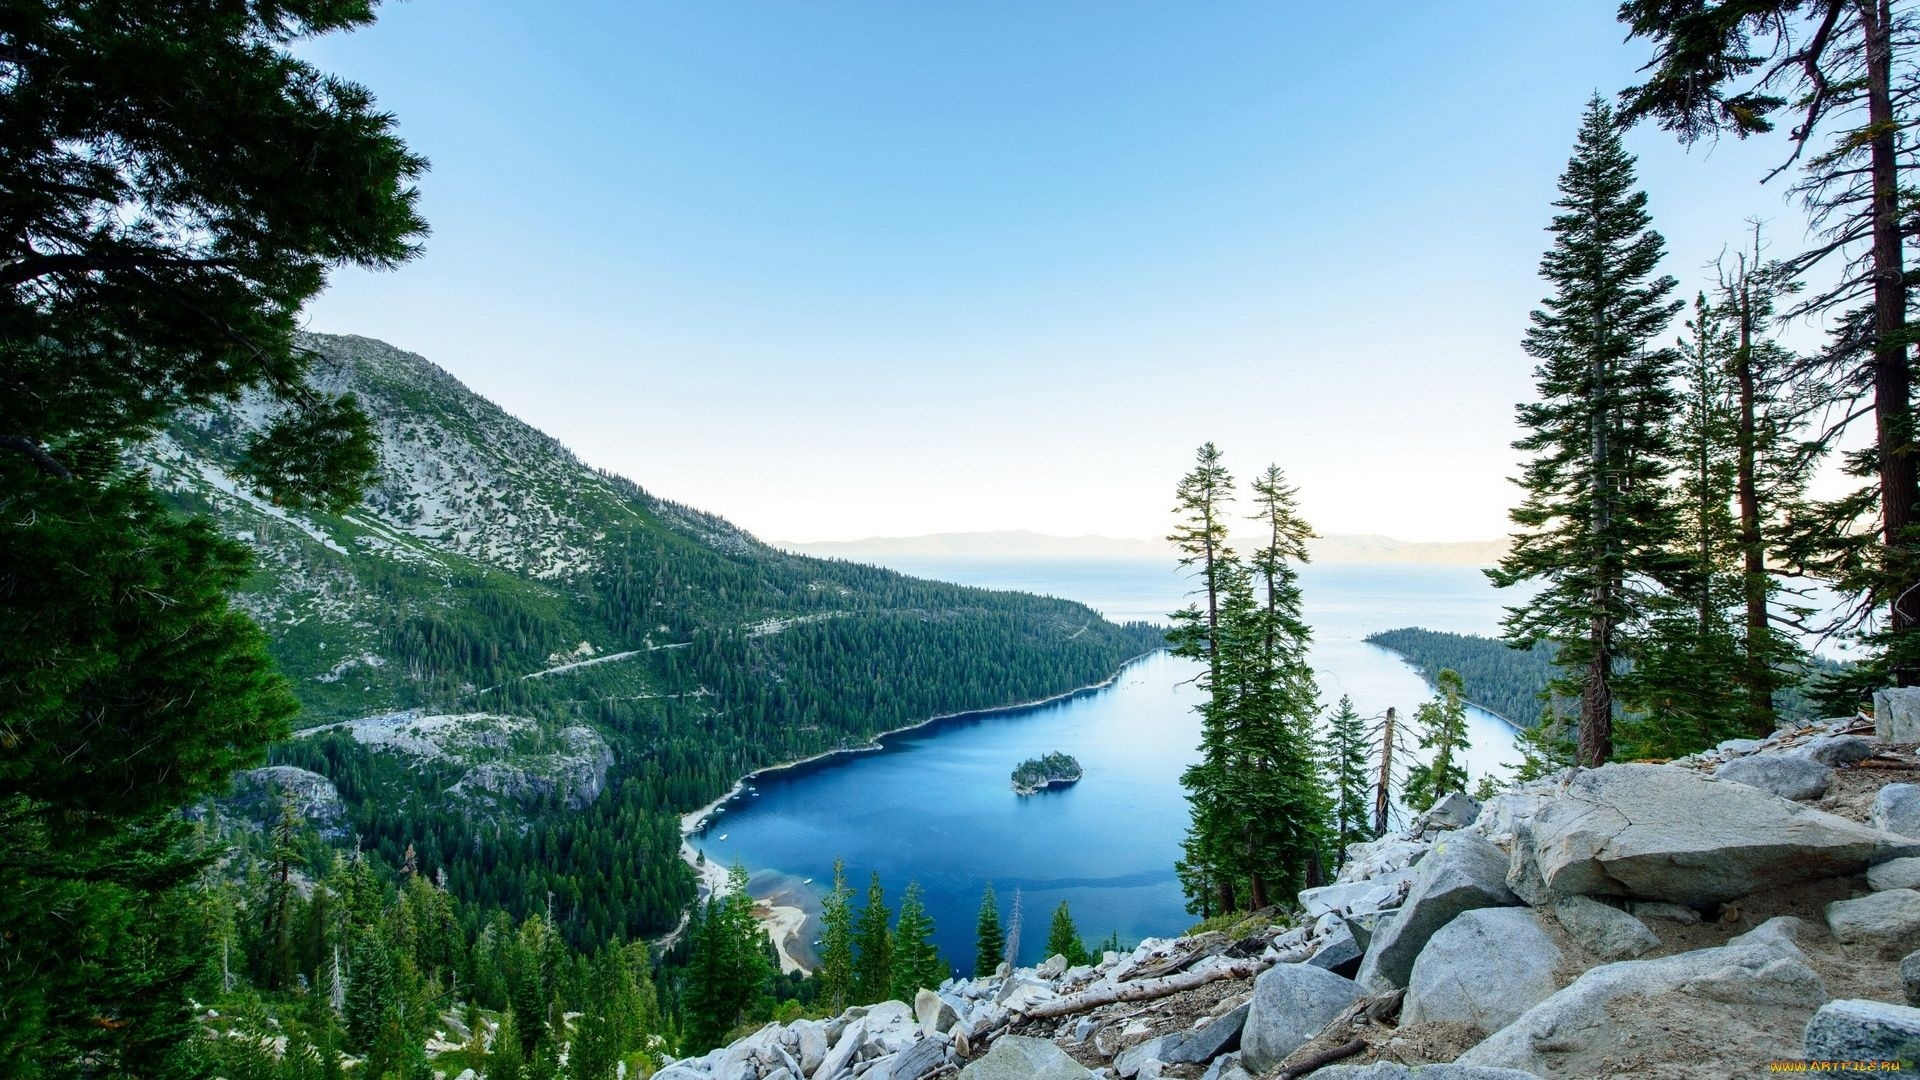 Lake Tahoe desktop wallpaper hd